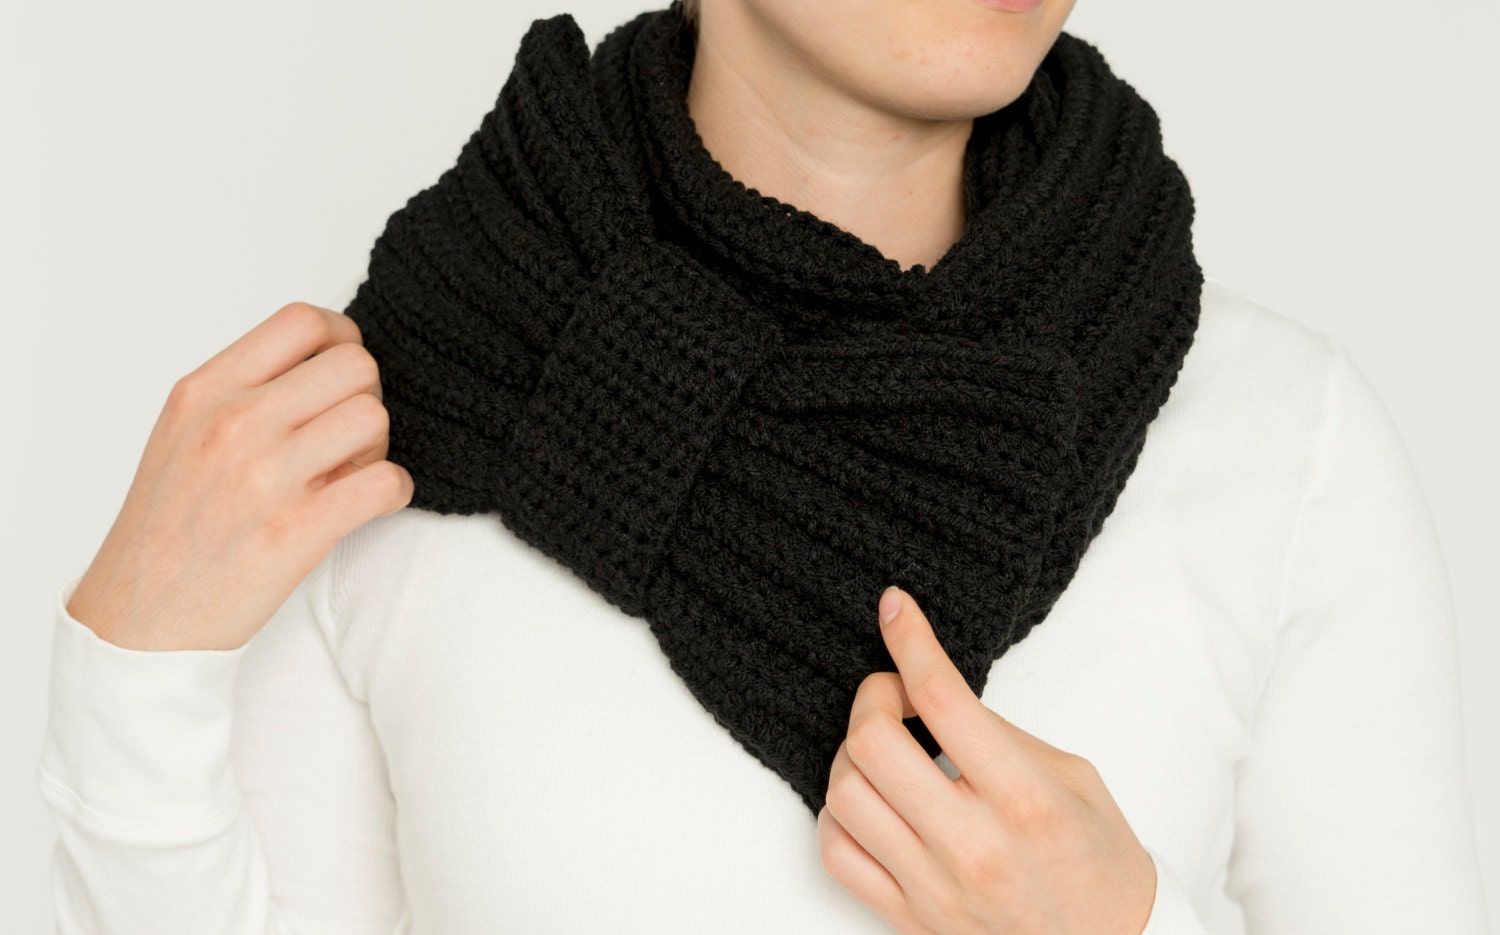 Black Infinity Scarves Women - Erieairfair